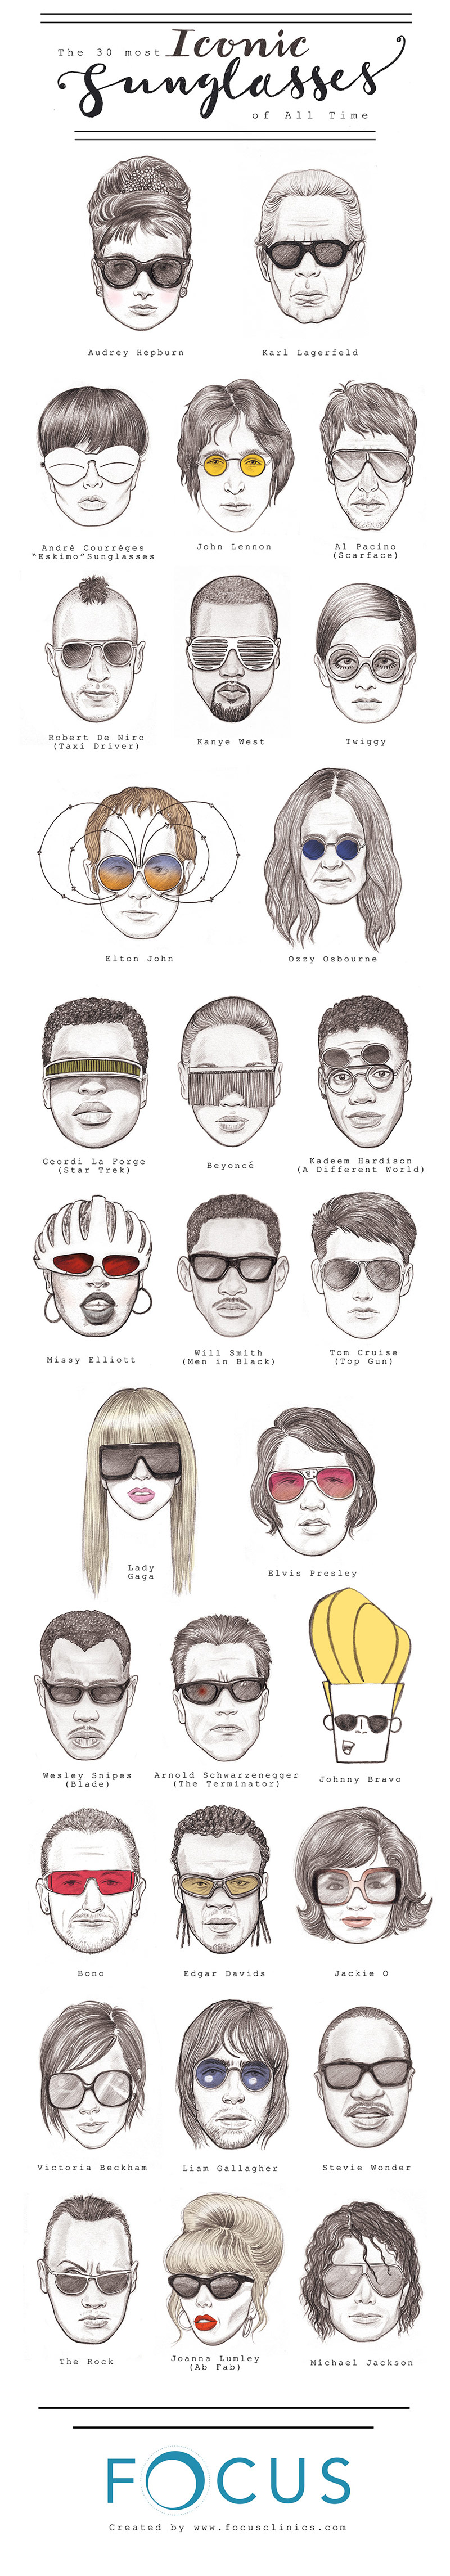 most-iconic-sun-glasses